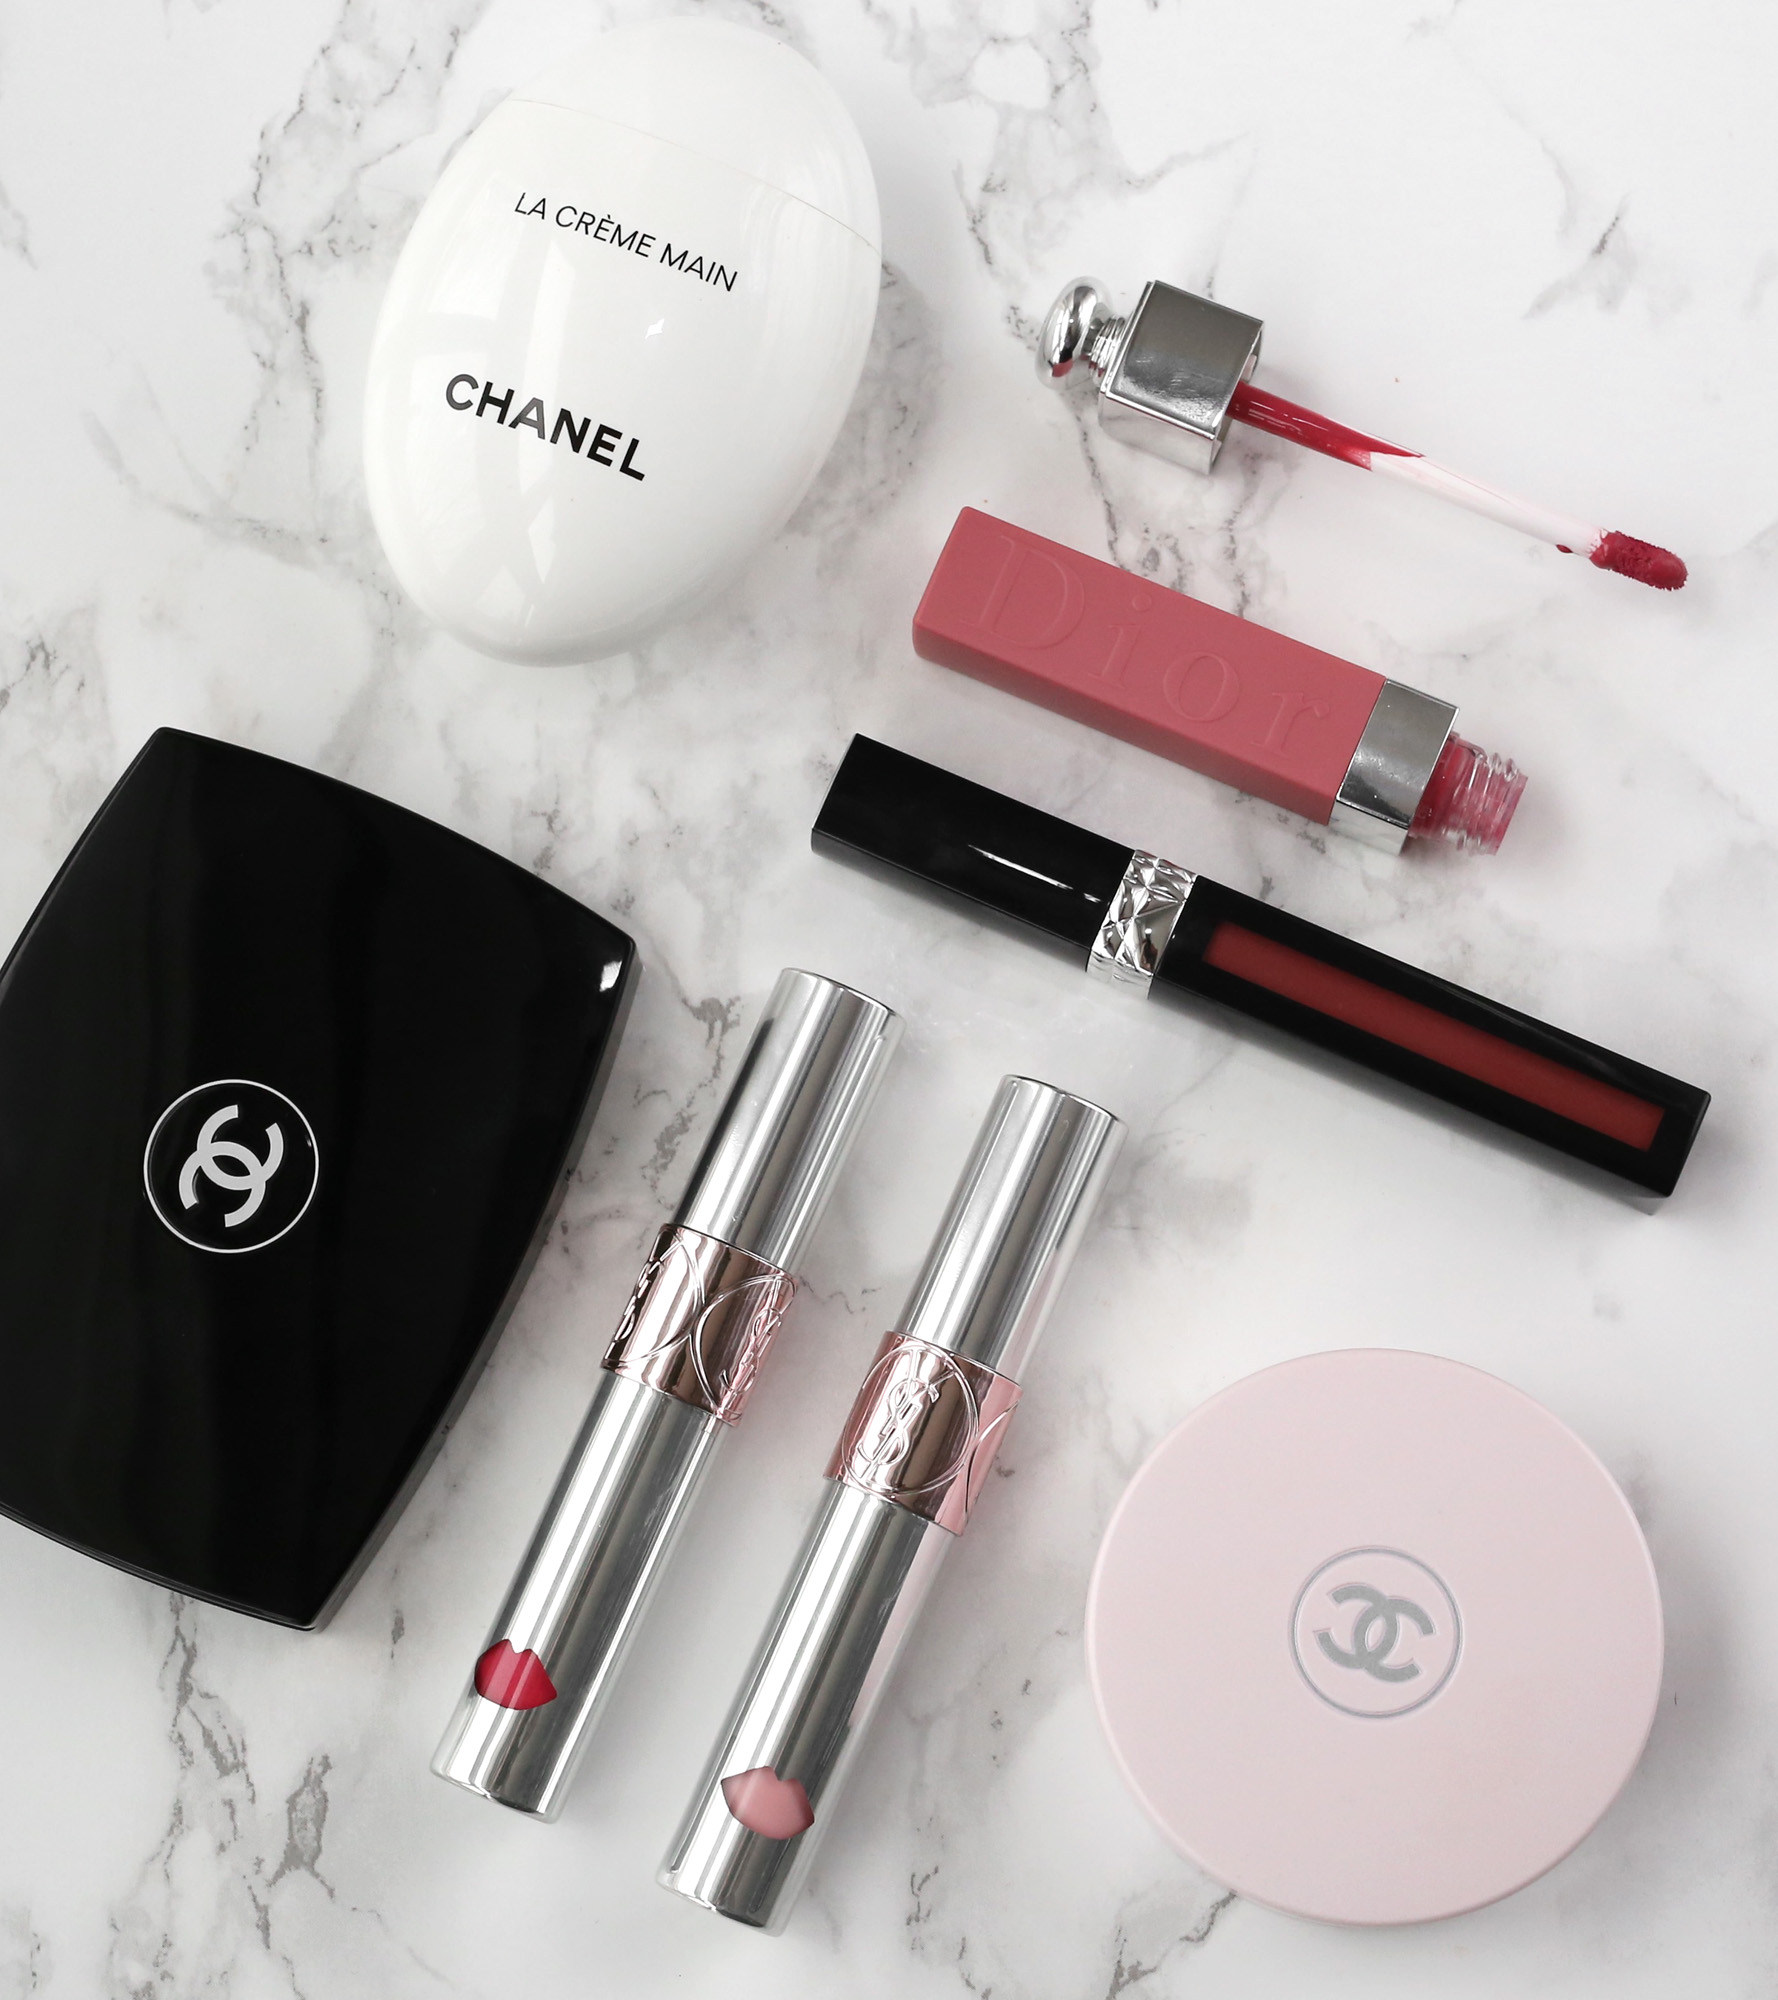 Best of New Beauty from Luxe to Drugstore - Chanel, Nest Fragrances, Dior Makeup, YSL Beauty, Gilette Venus Metal Razor - WOAHSTYLE.COM_7415.jpg